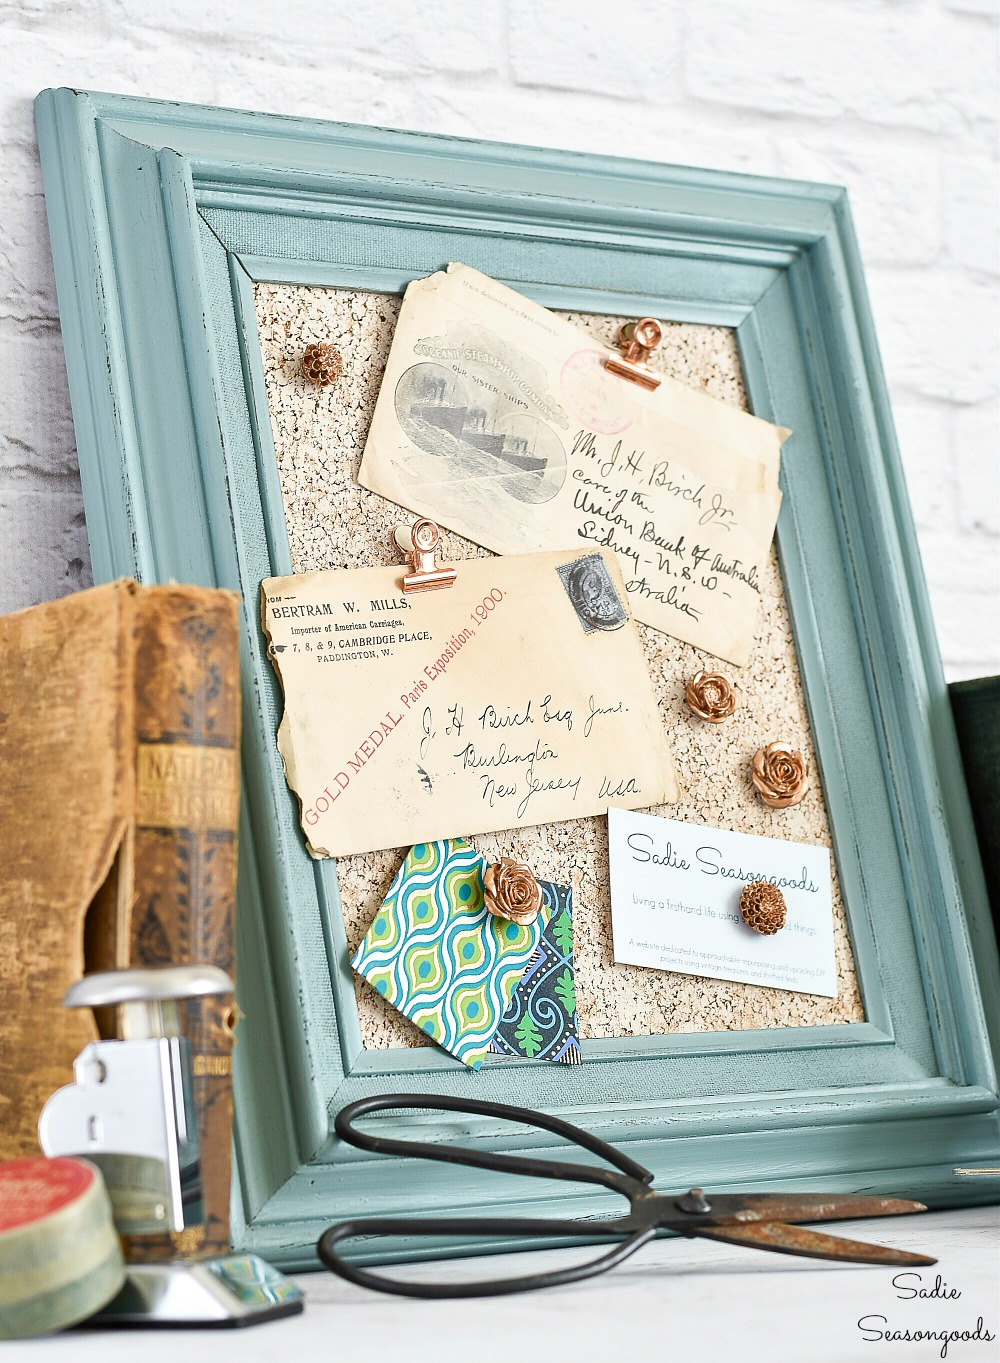 Decorative cork boards for home office decor with a picture frame and painted cork board